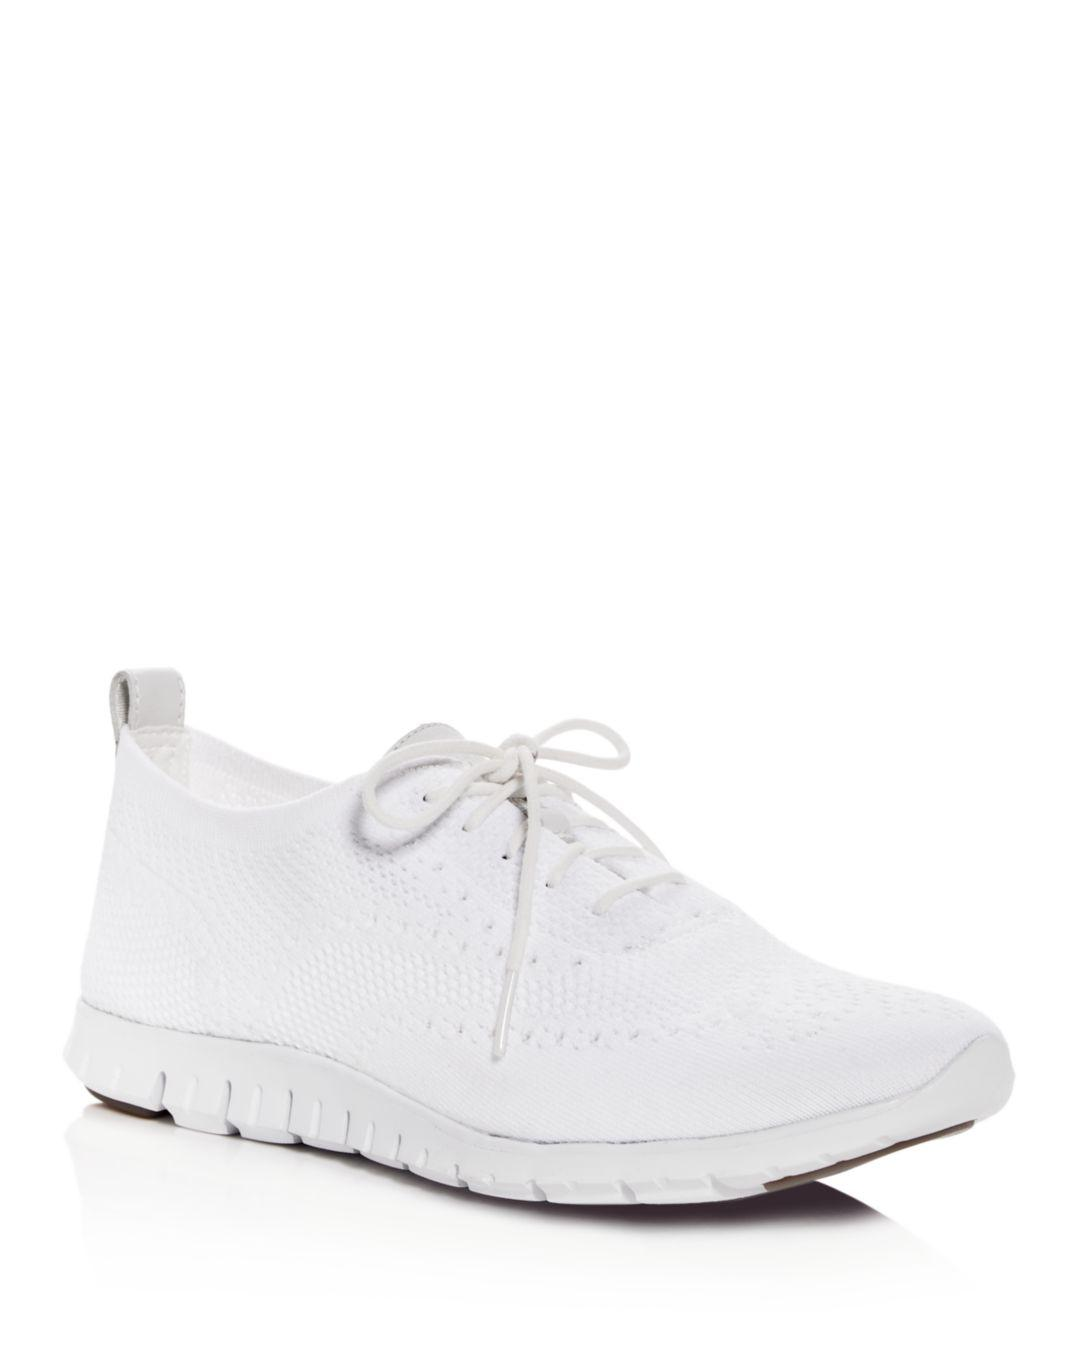 37fed979f69d0 Cole Haan Women's Zerogrand Stitchlite Knit Lace - Up Oxford ...